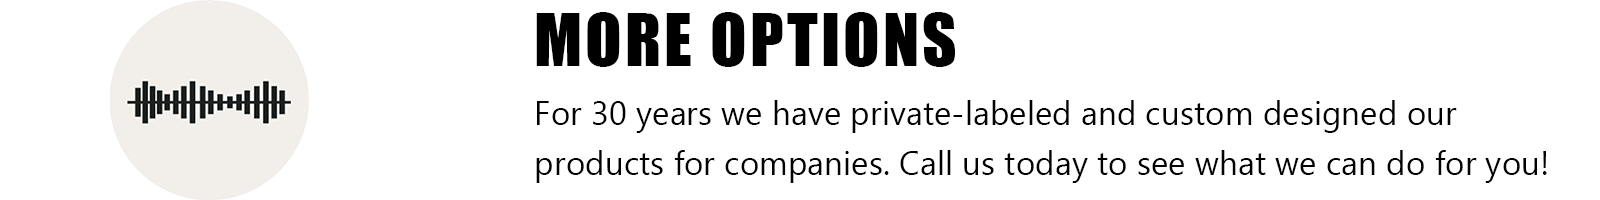 about-options2.png